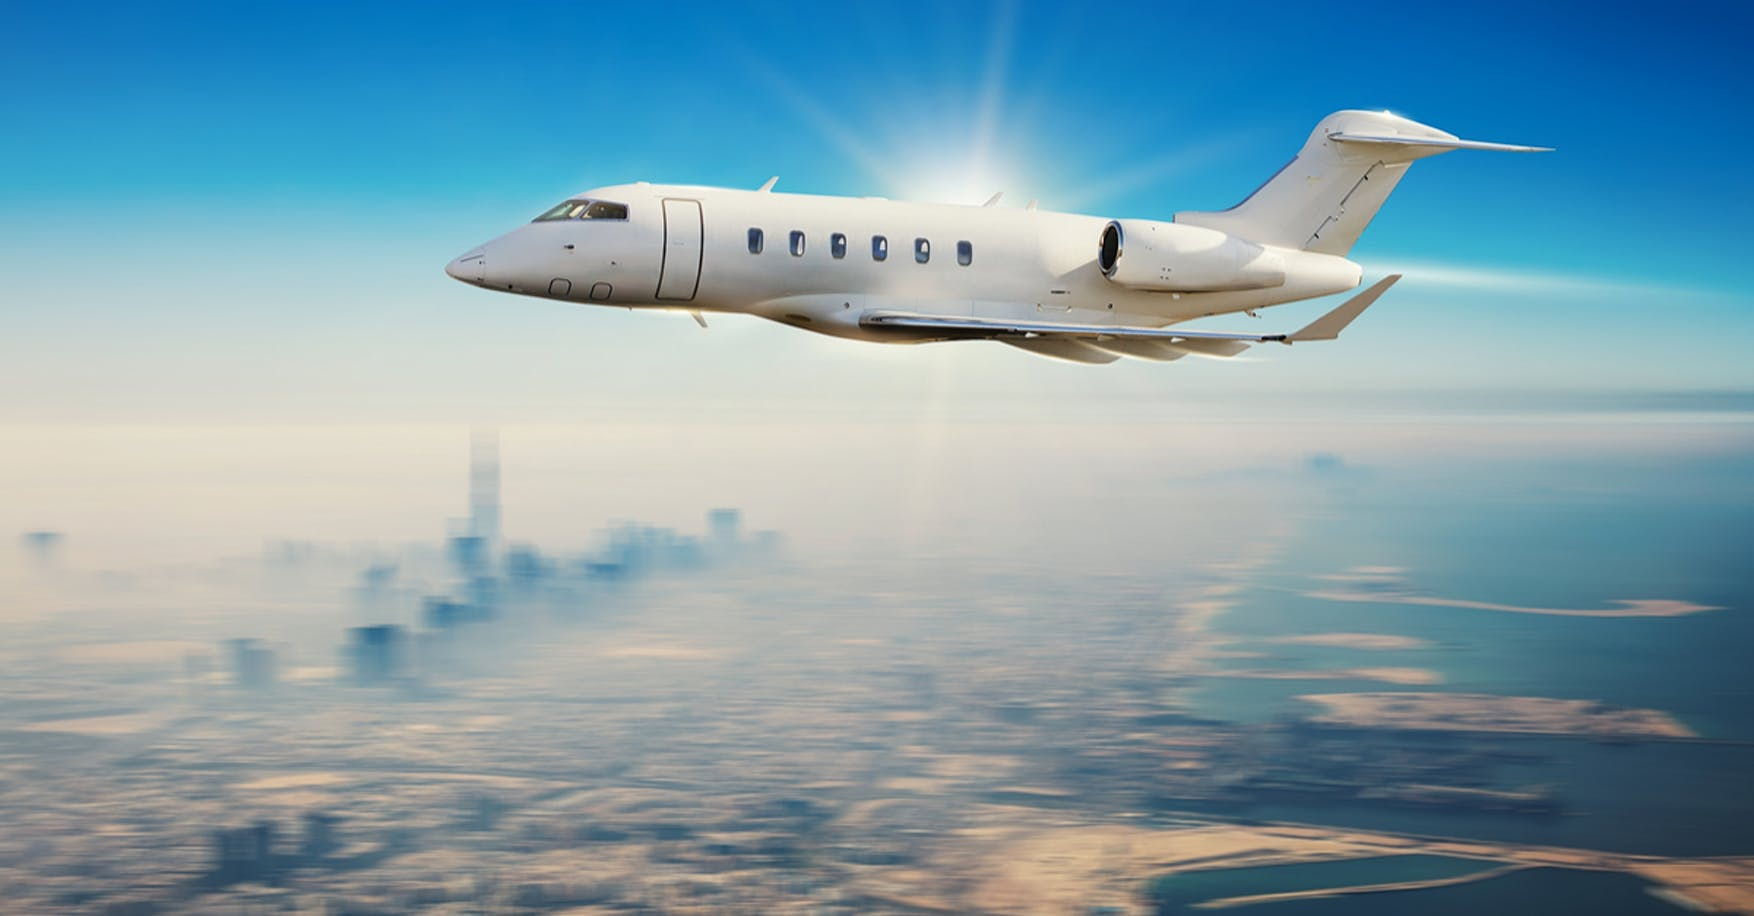 Private Jet Quote The 1 Fastest Growing Private Air Travel And Lifestyle Community